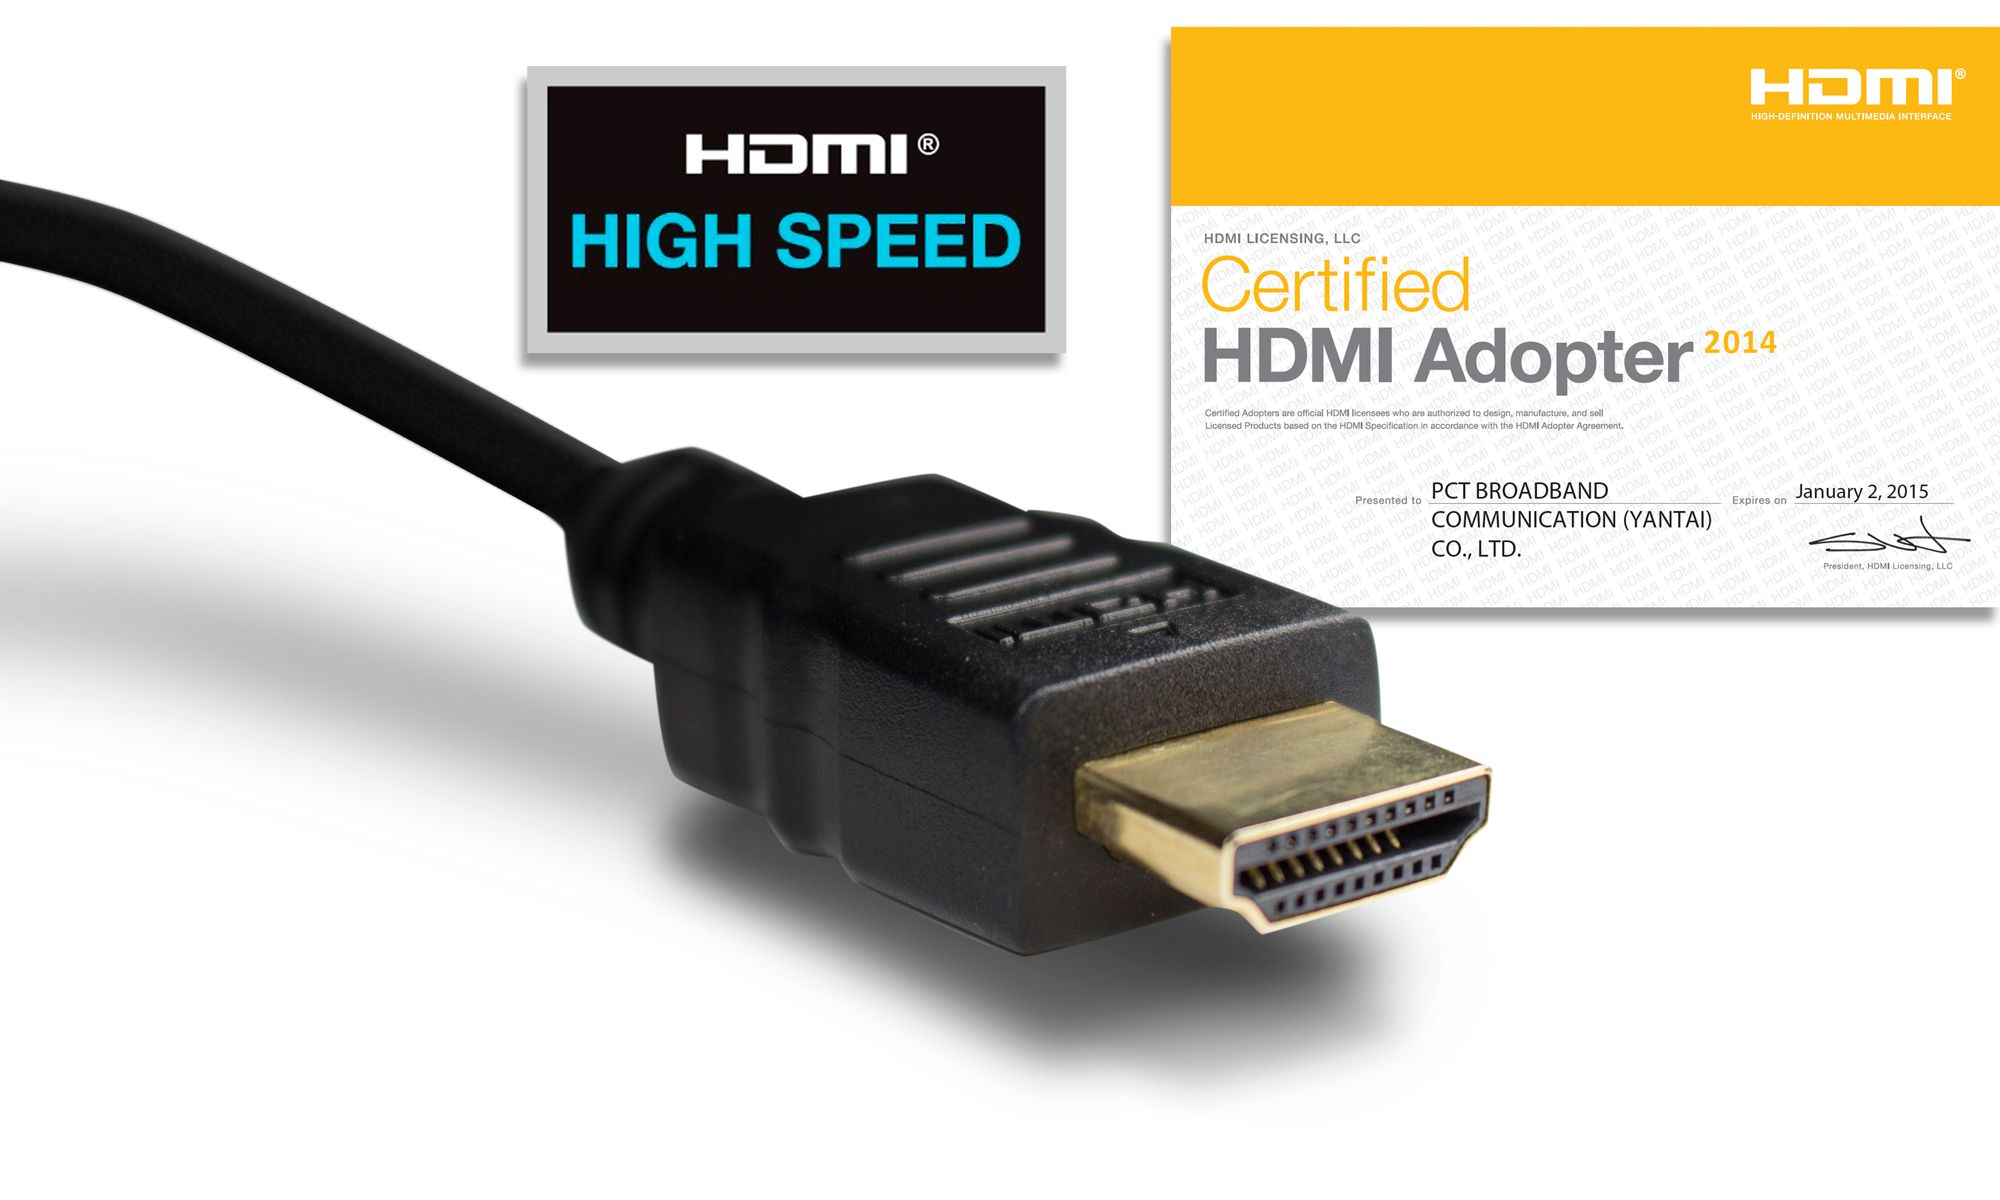 PCT International 28 and 30 AWG High Speed HDMI Cable / Certified HDMI Adopter